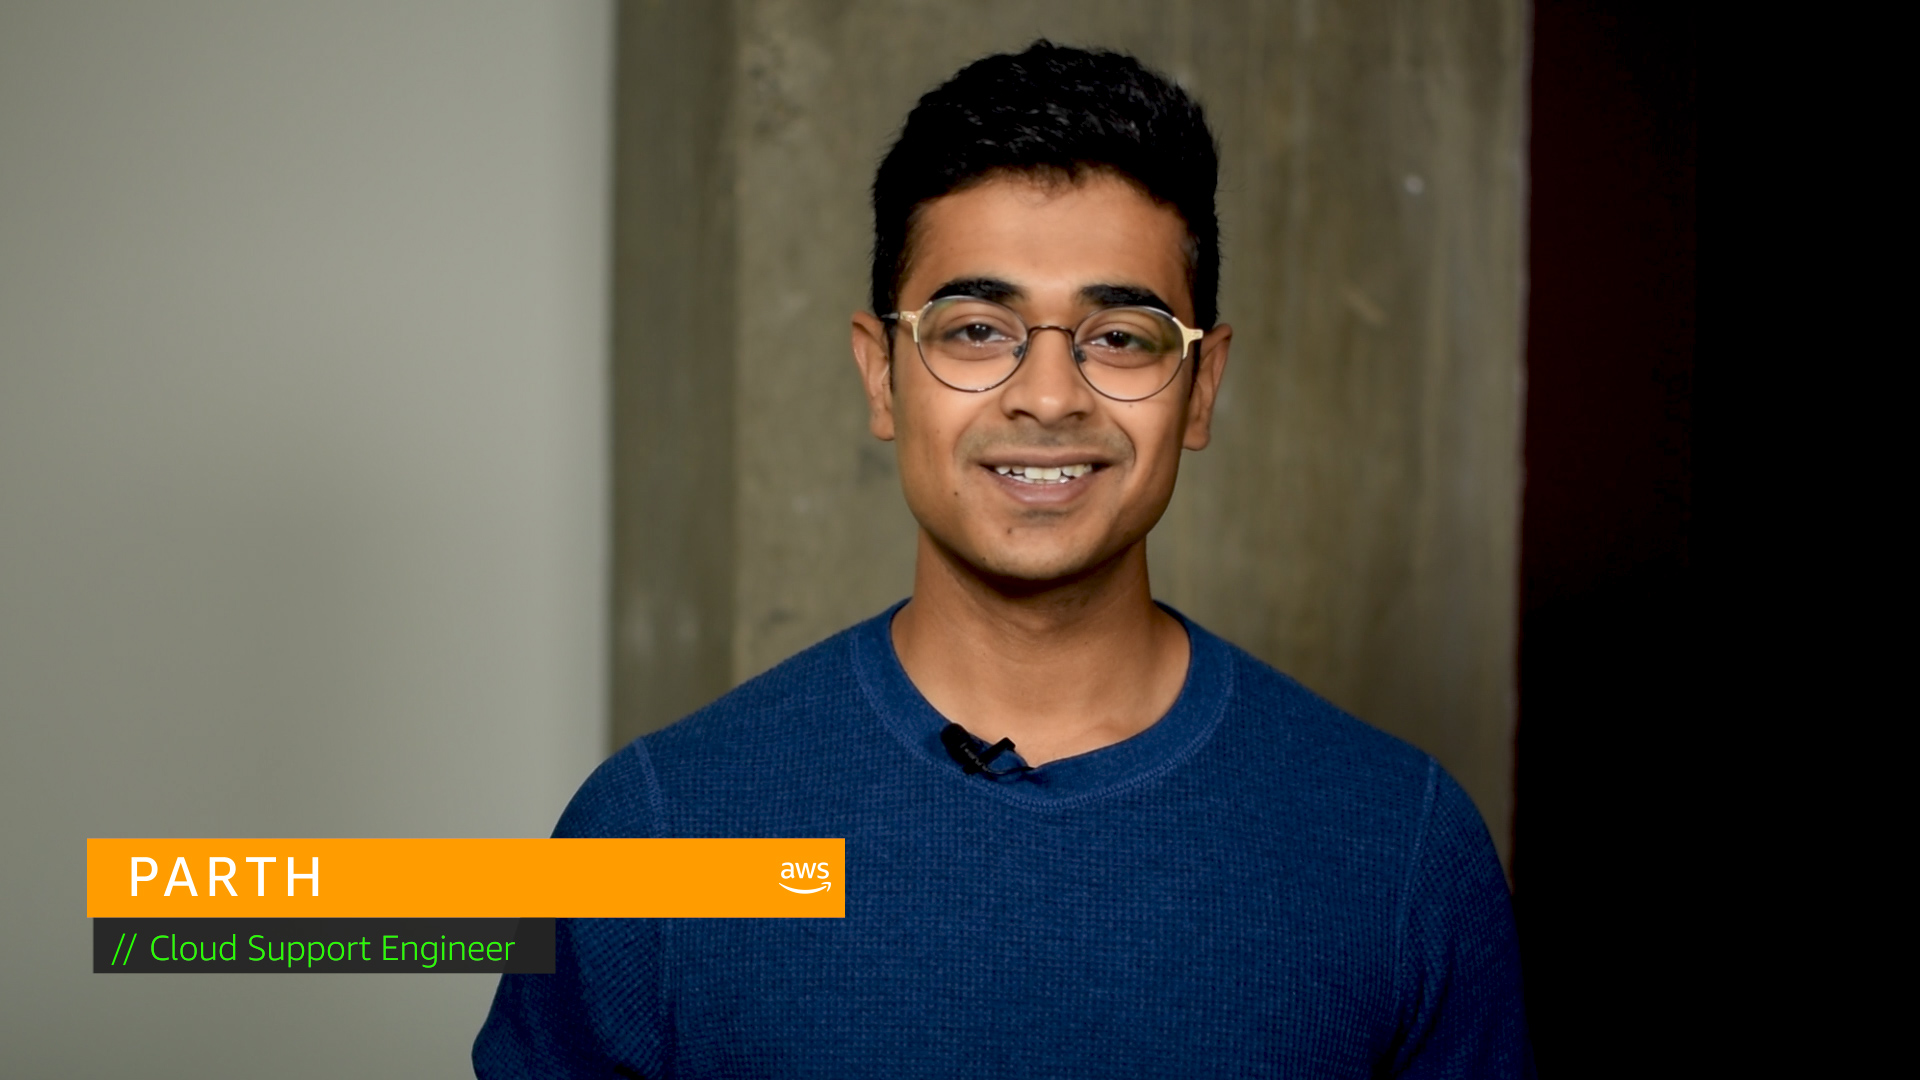 Watch Parth's video to learn more